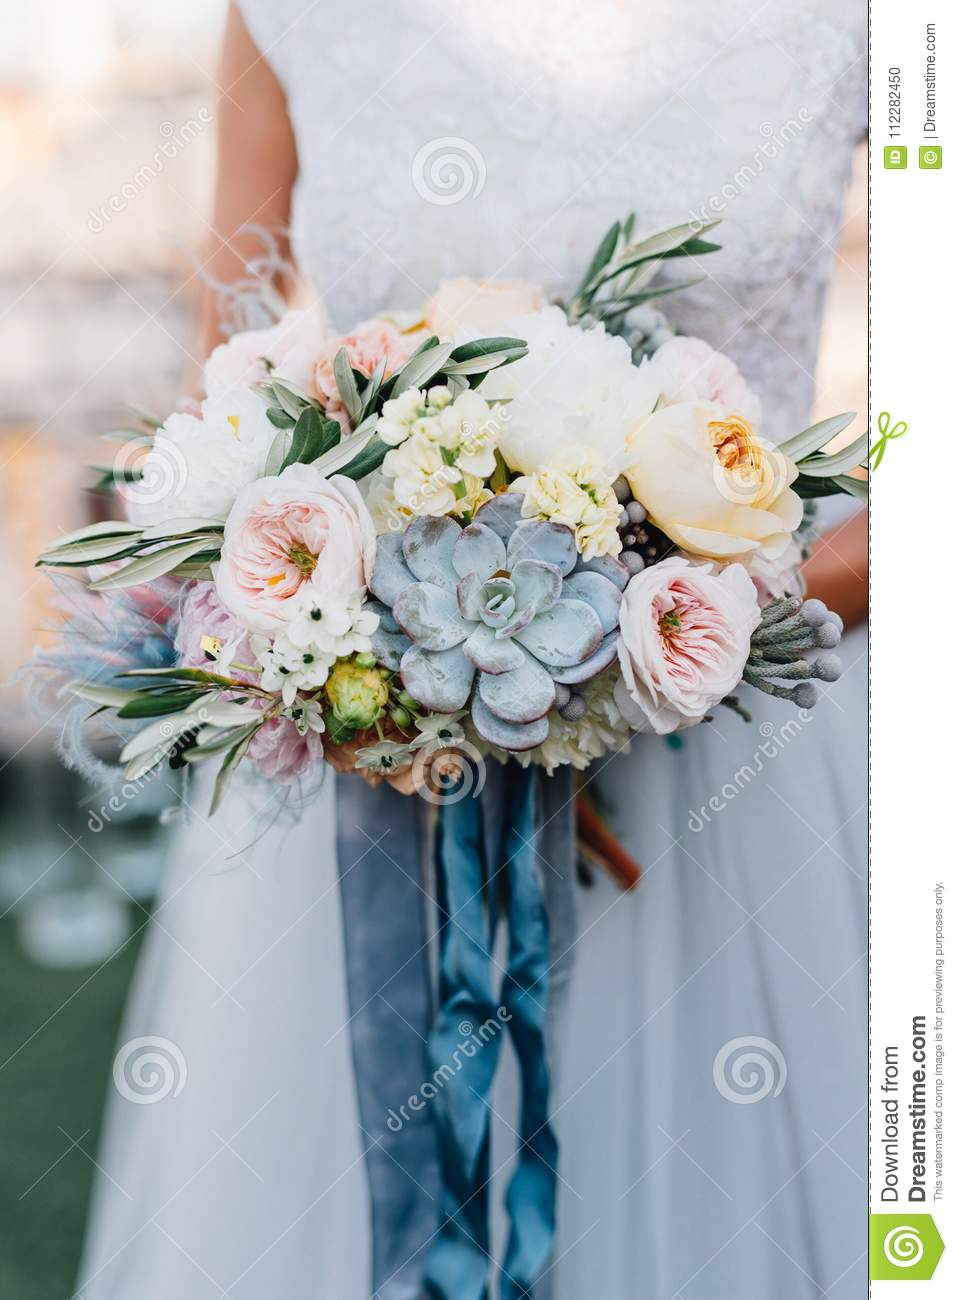 Bride In Blue Wedding Dress Holds Colorful Wedding Bouquet With ...